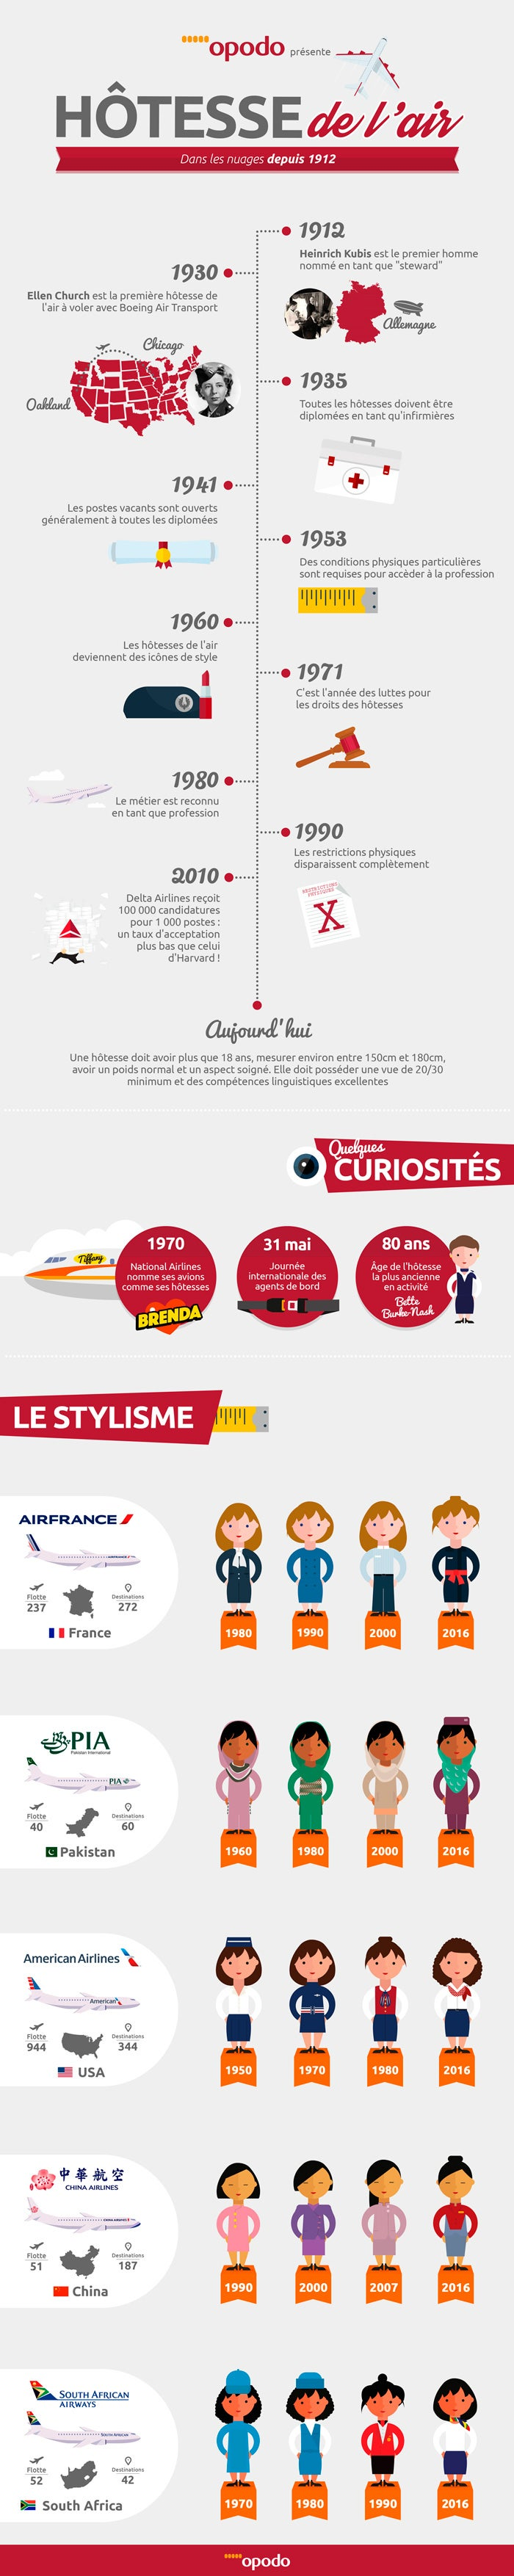 Infographique hotesse de l'air